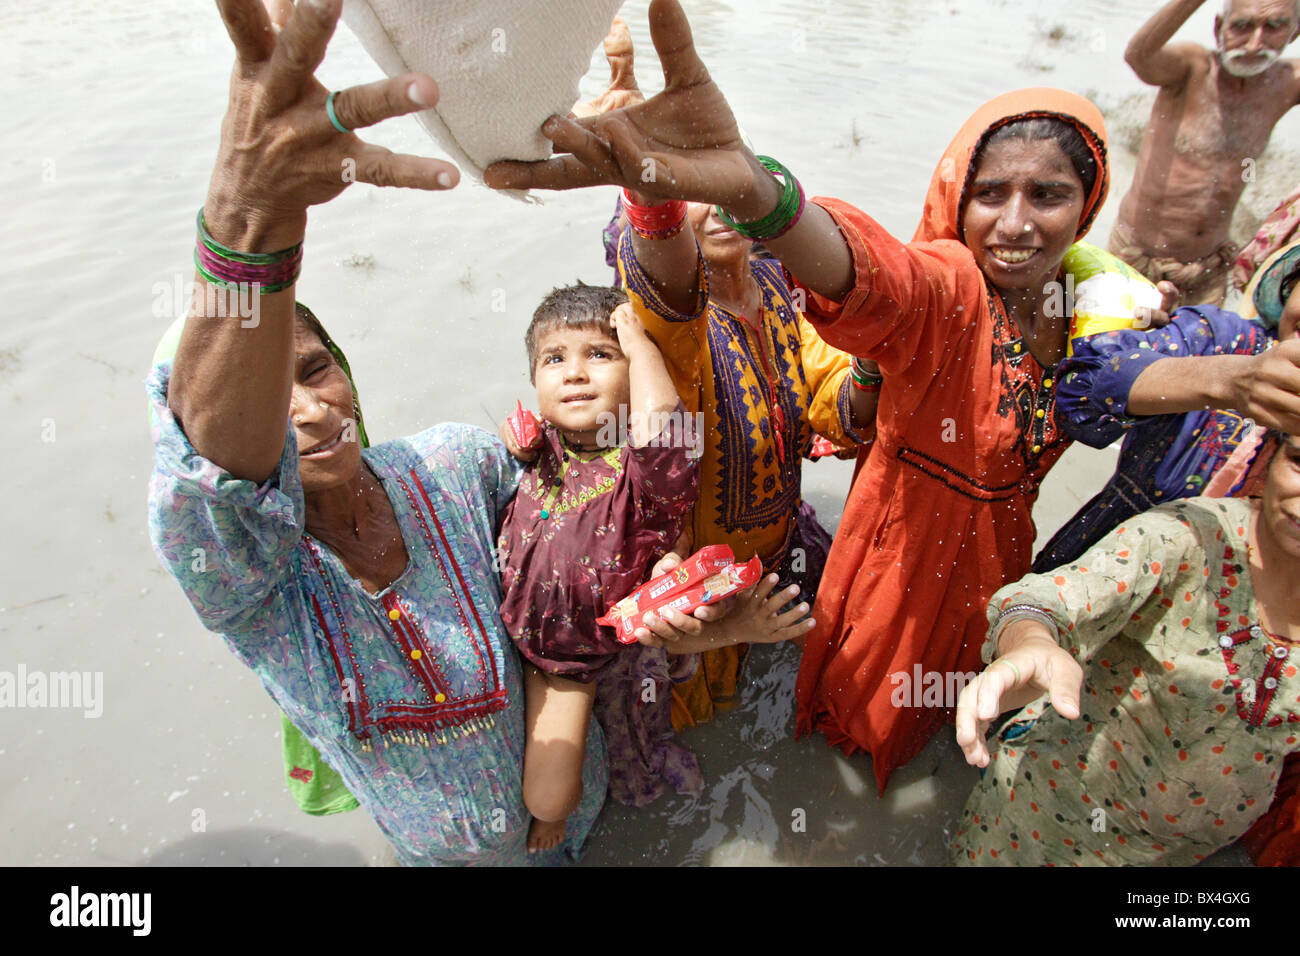 Flood victims getting relief supplies, Shadhat Kot, Pakistan - Stock Image